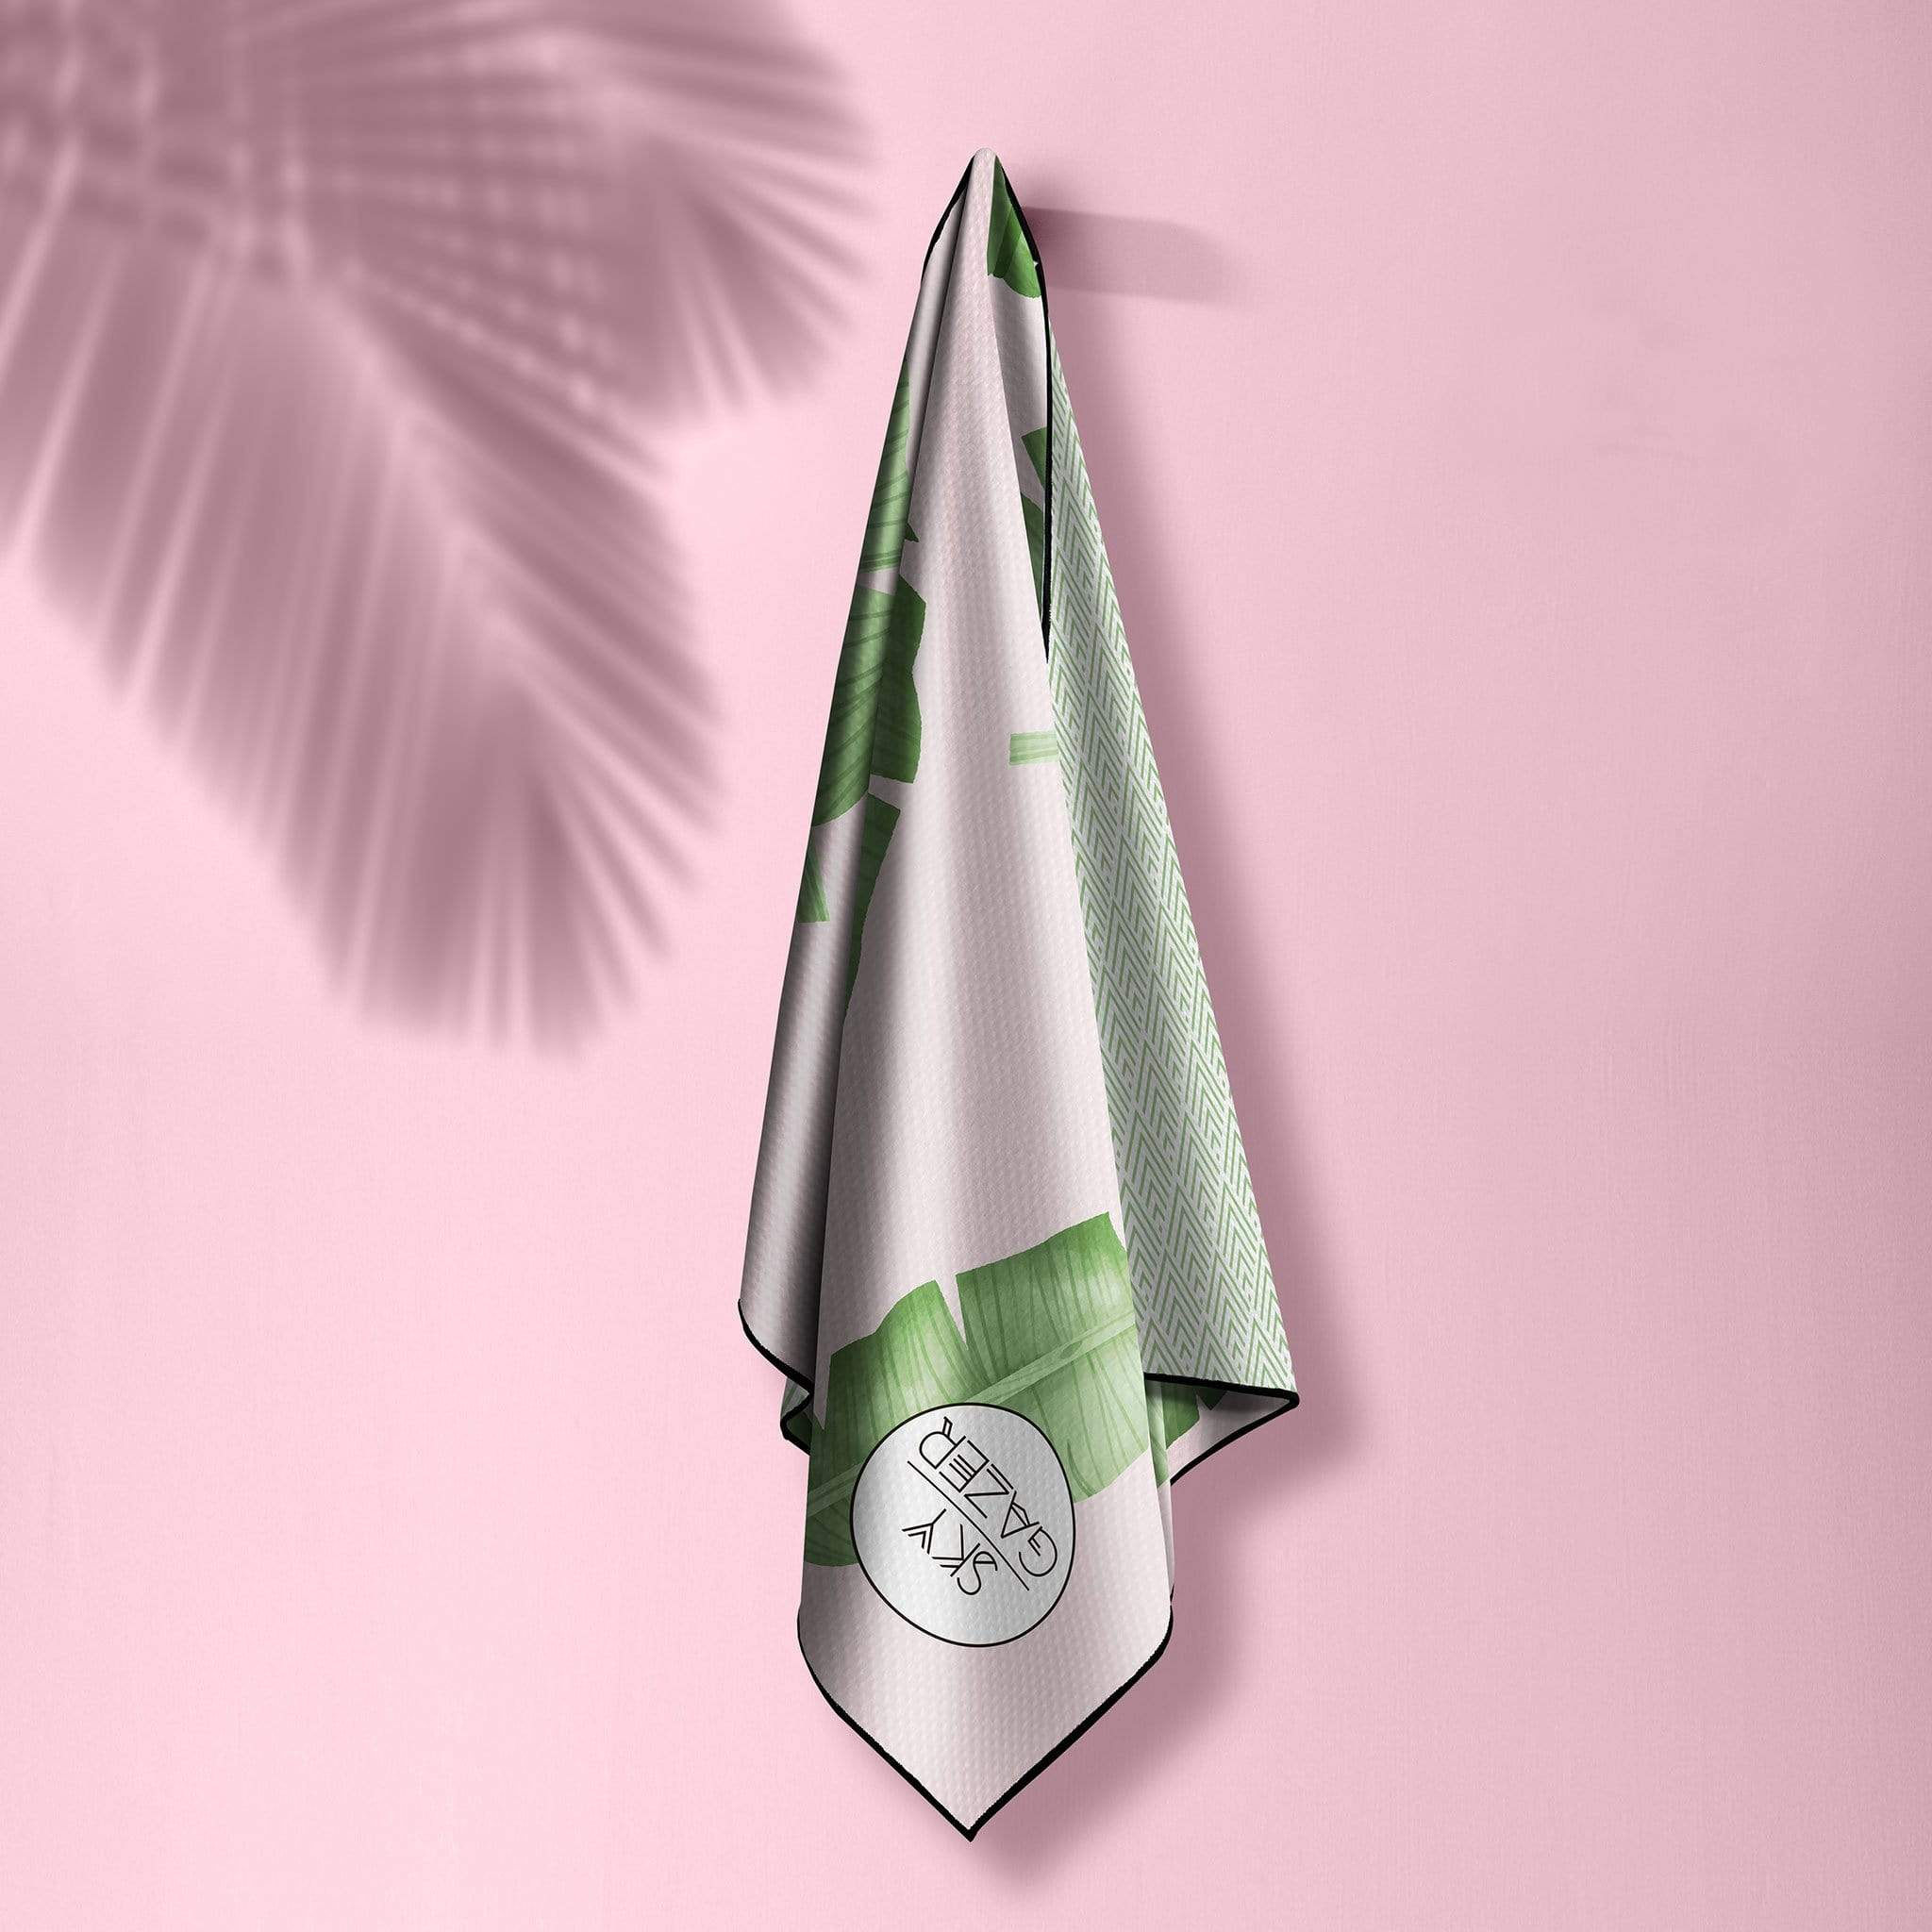 Balmoral The Ultimate Beach Towel - by Sky Gazer currently available at Rawspice Boutique.